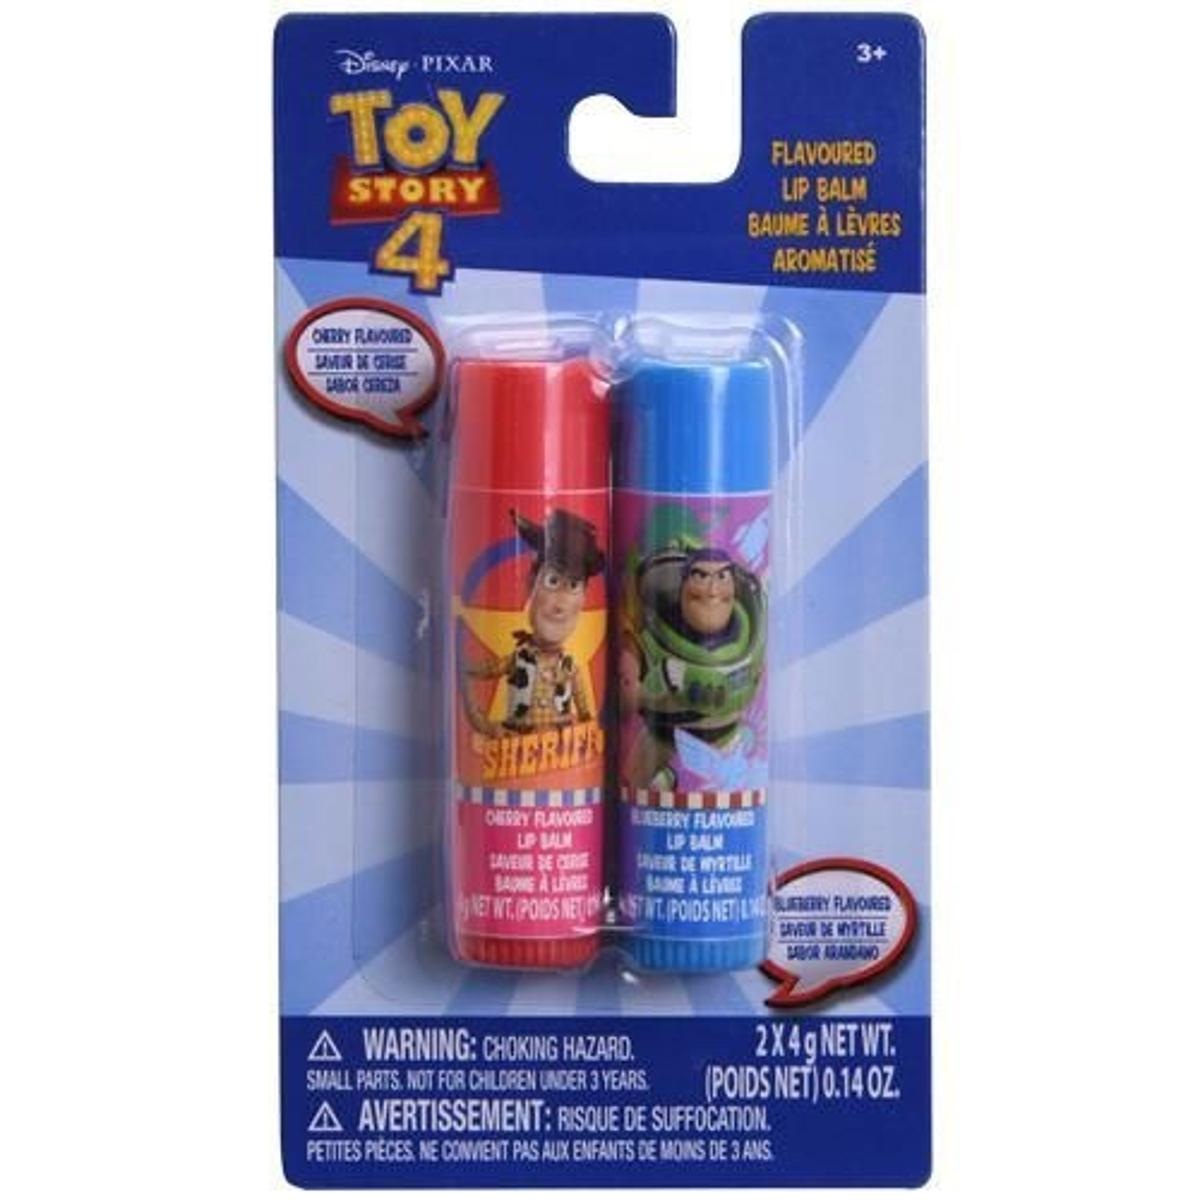 Toy Story 4 2 Pack Lip Balm